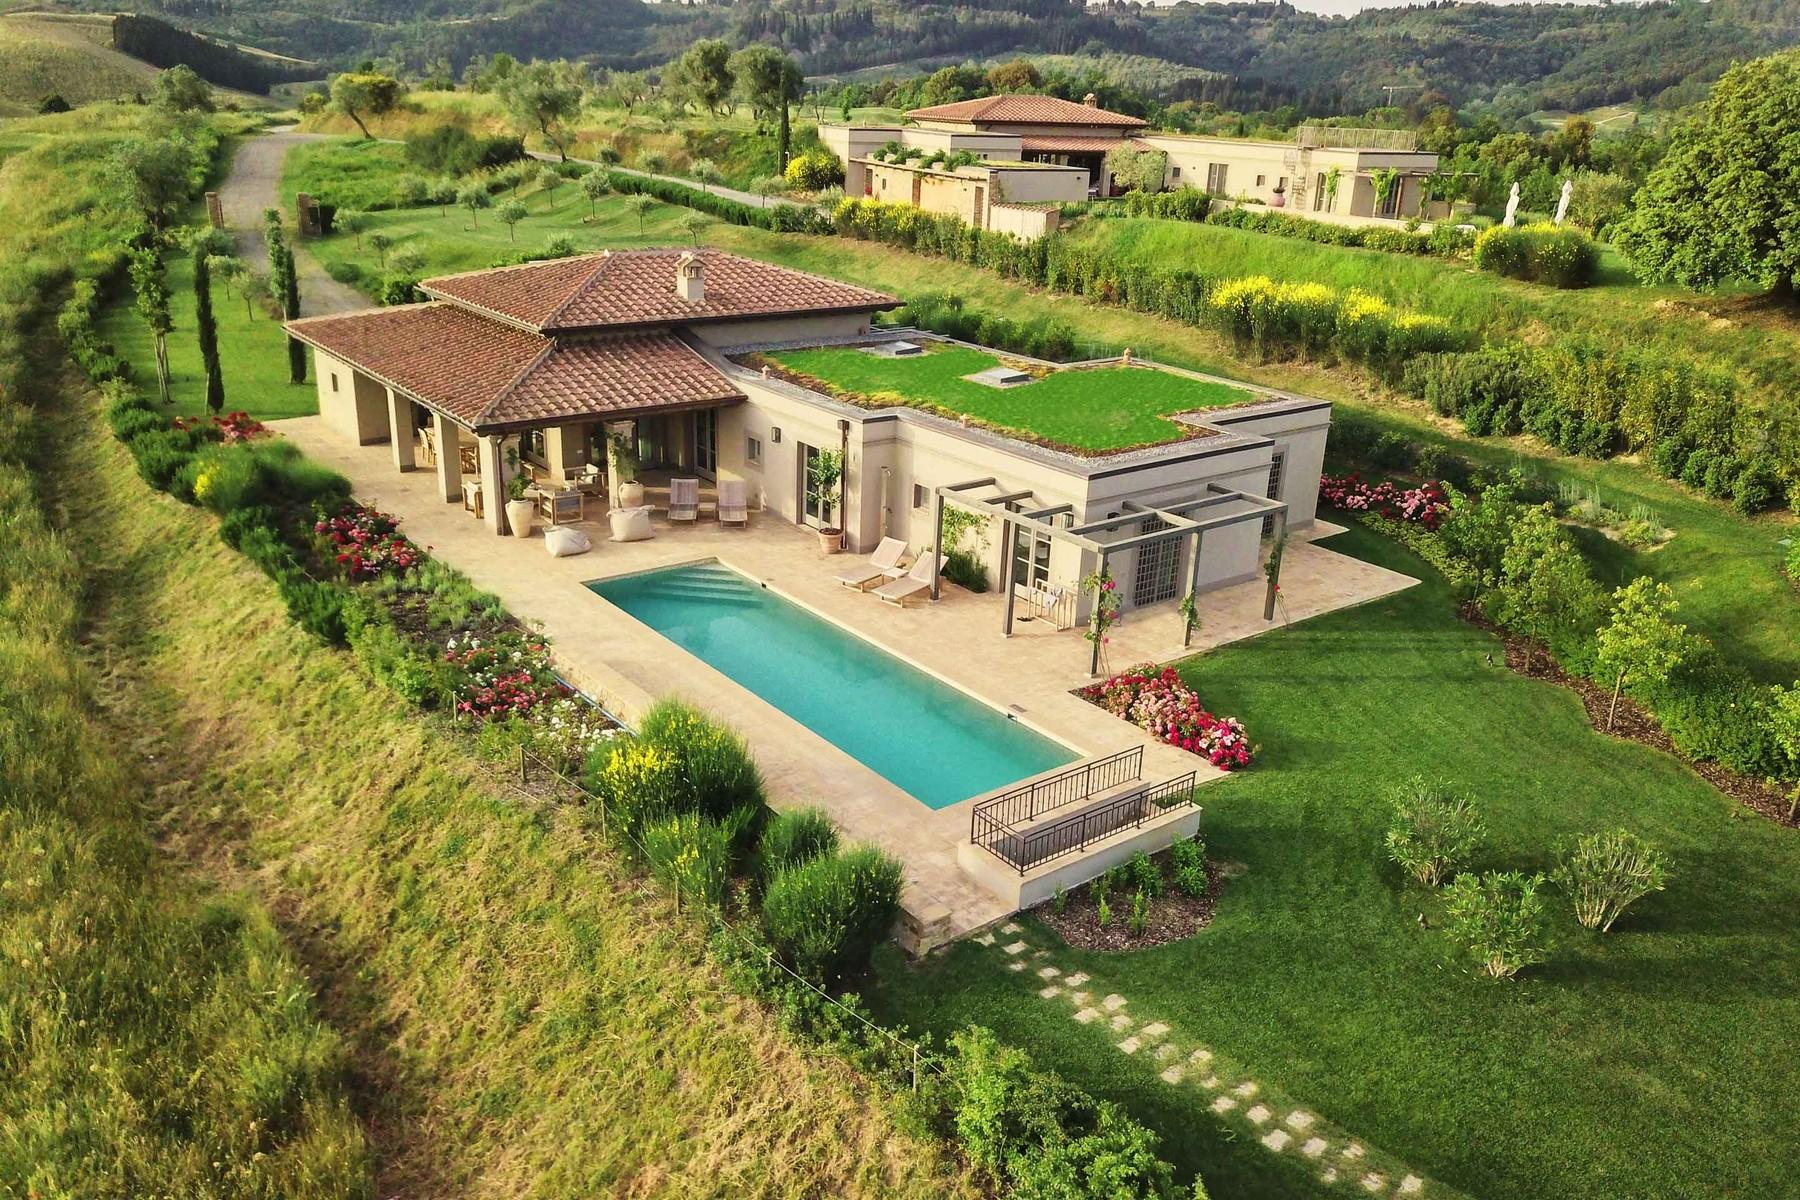 Marvellous new build villas in the Tuscan countryside - 2